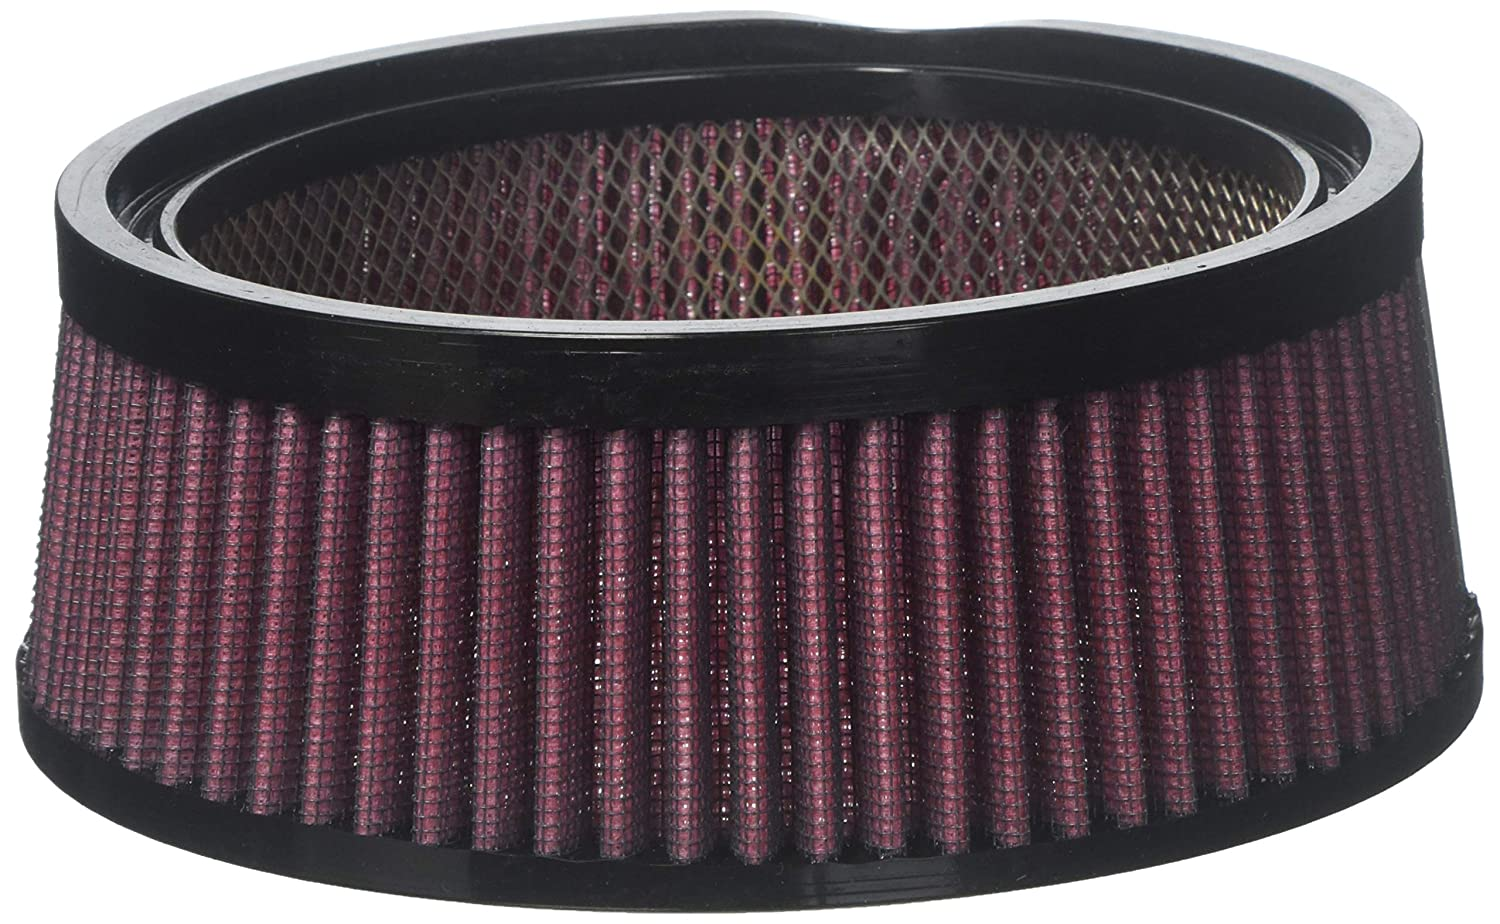 S/&,S Cycle Stealth Air Cleaner Replacement Filter 170-0126